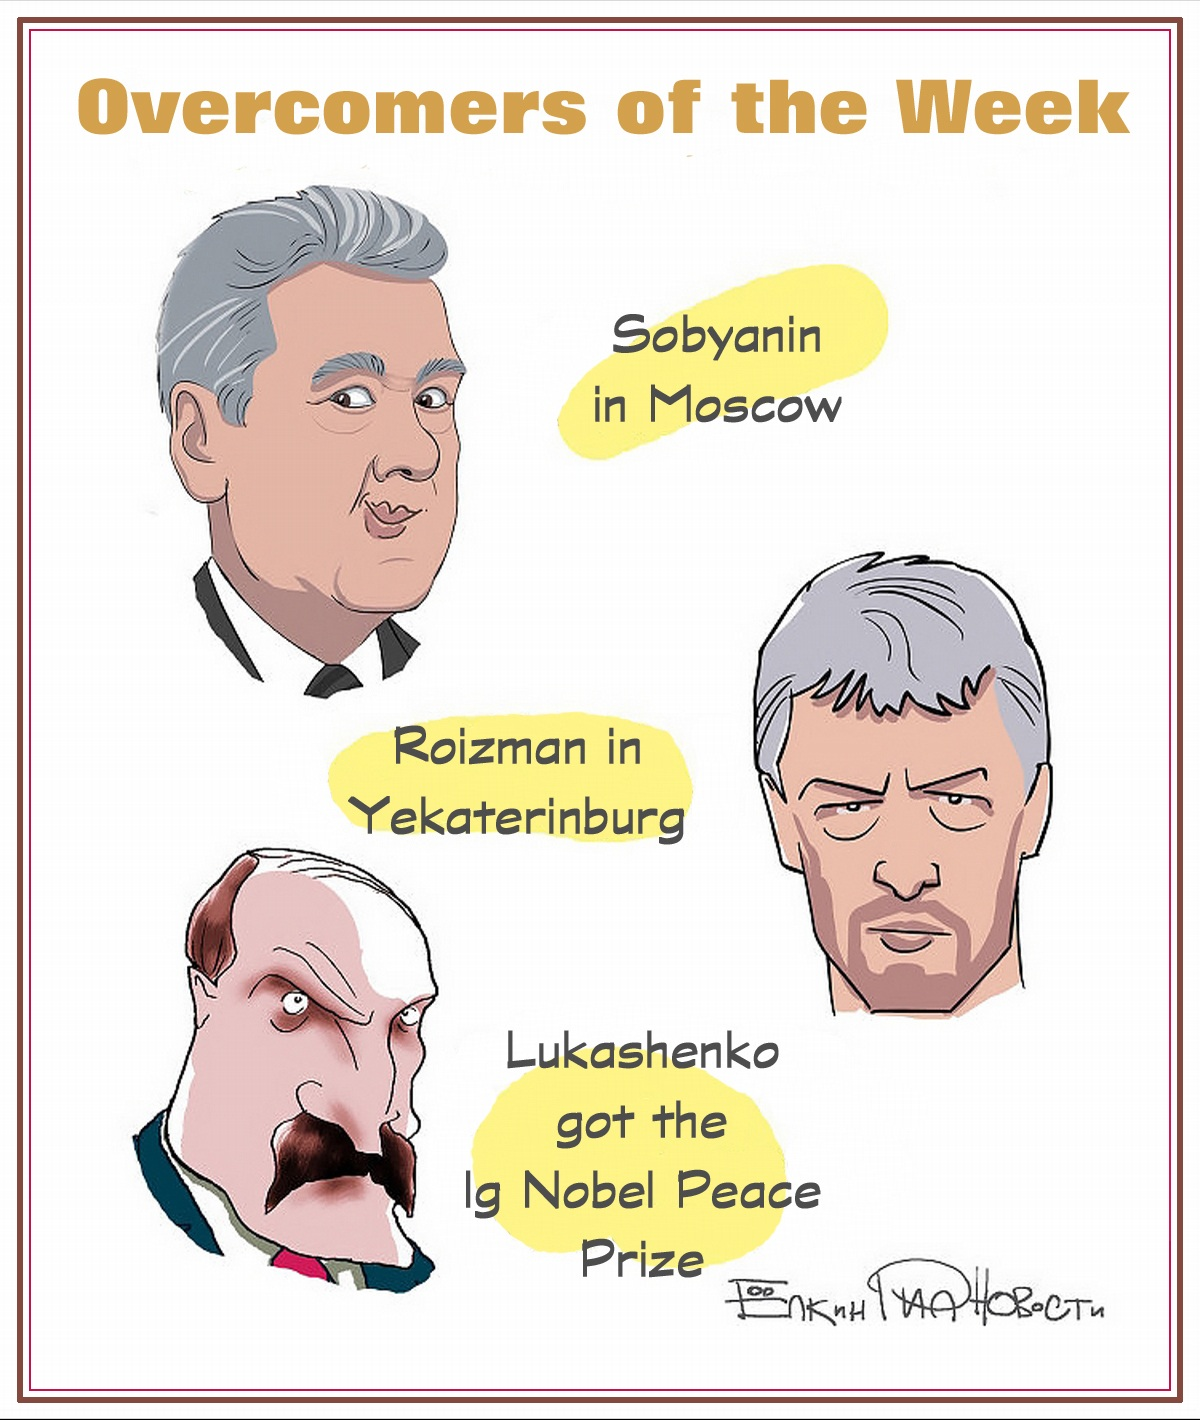 00 Sergei Yolkin. Events of the Week in Cartoons by Sergei Yolkin. 9-13 September 2013